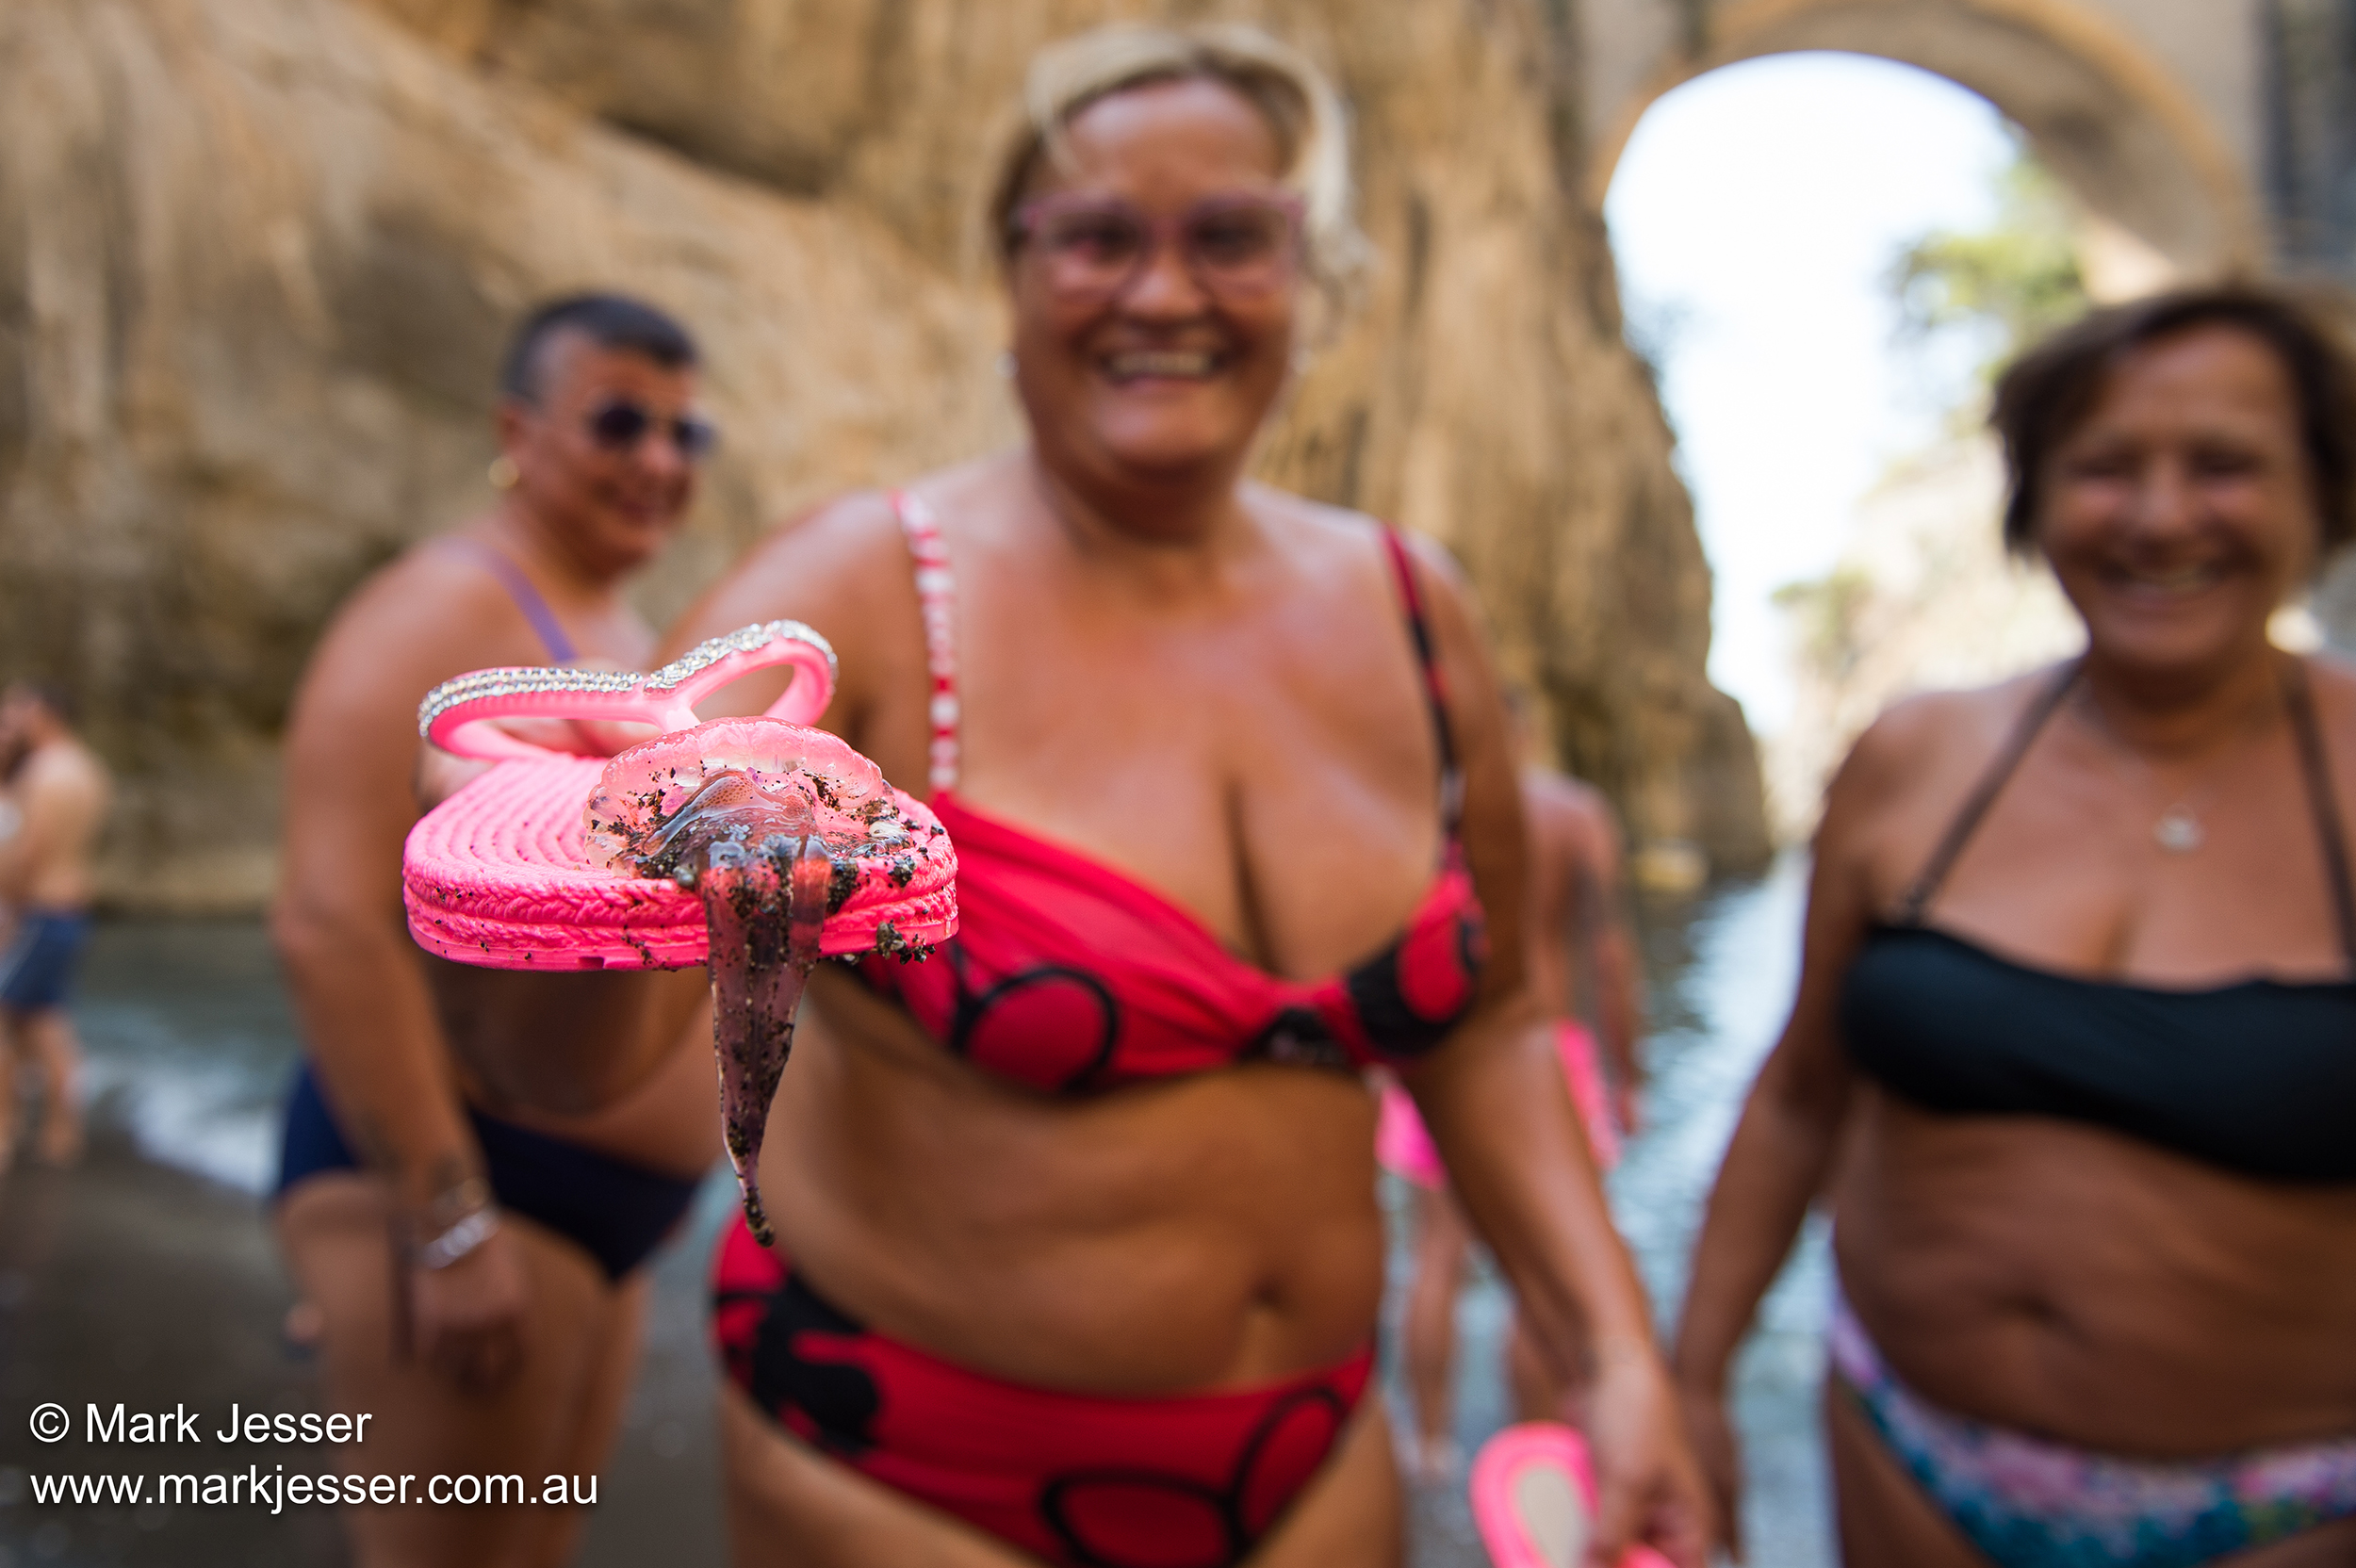 (Photo Mark Jesser) Furores beach, Italy. - Italian women remove jellyfish from the ocean.